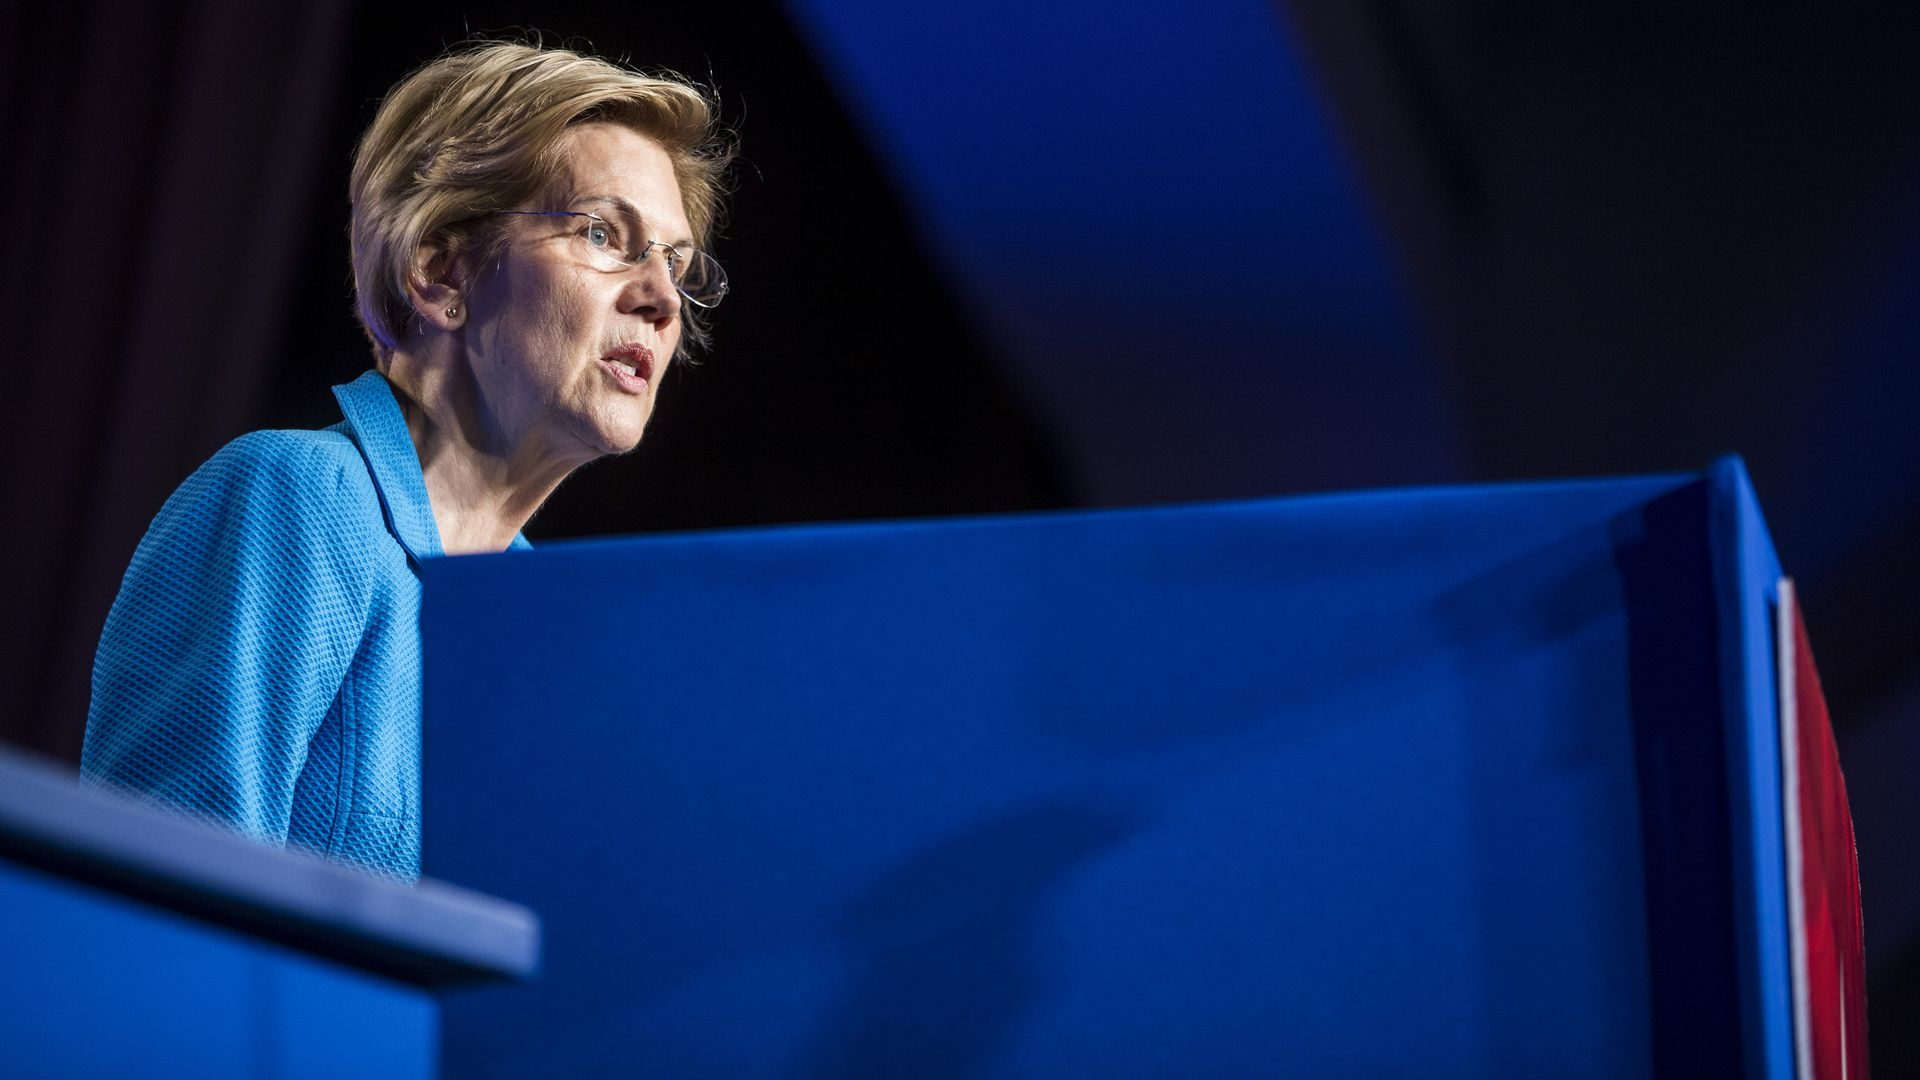 In this image, Elizabeth Warren stands and speaks behind a blue podium.